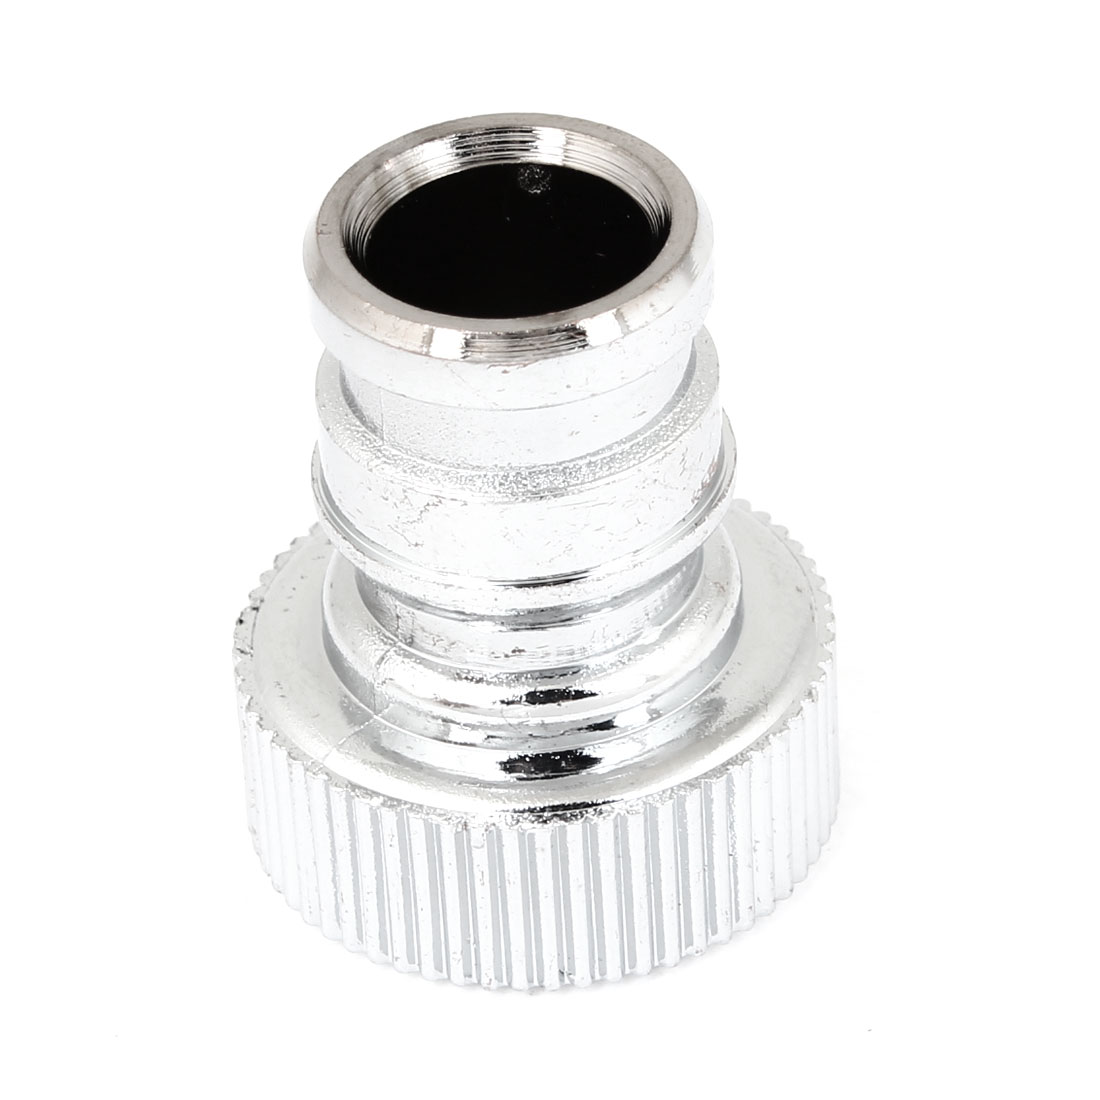 Replacing White Plastic Straight Water Filter Connector Silver Tone